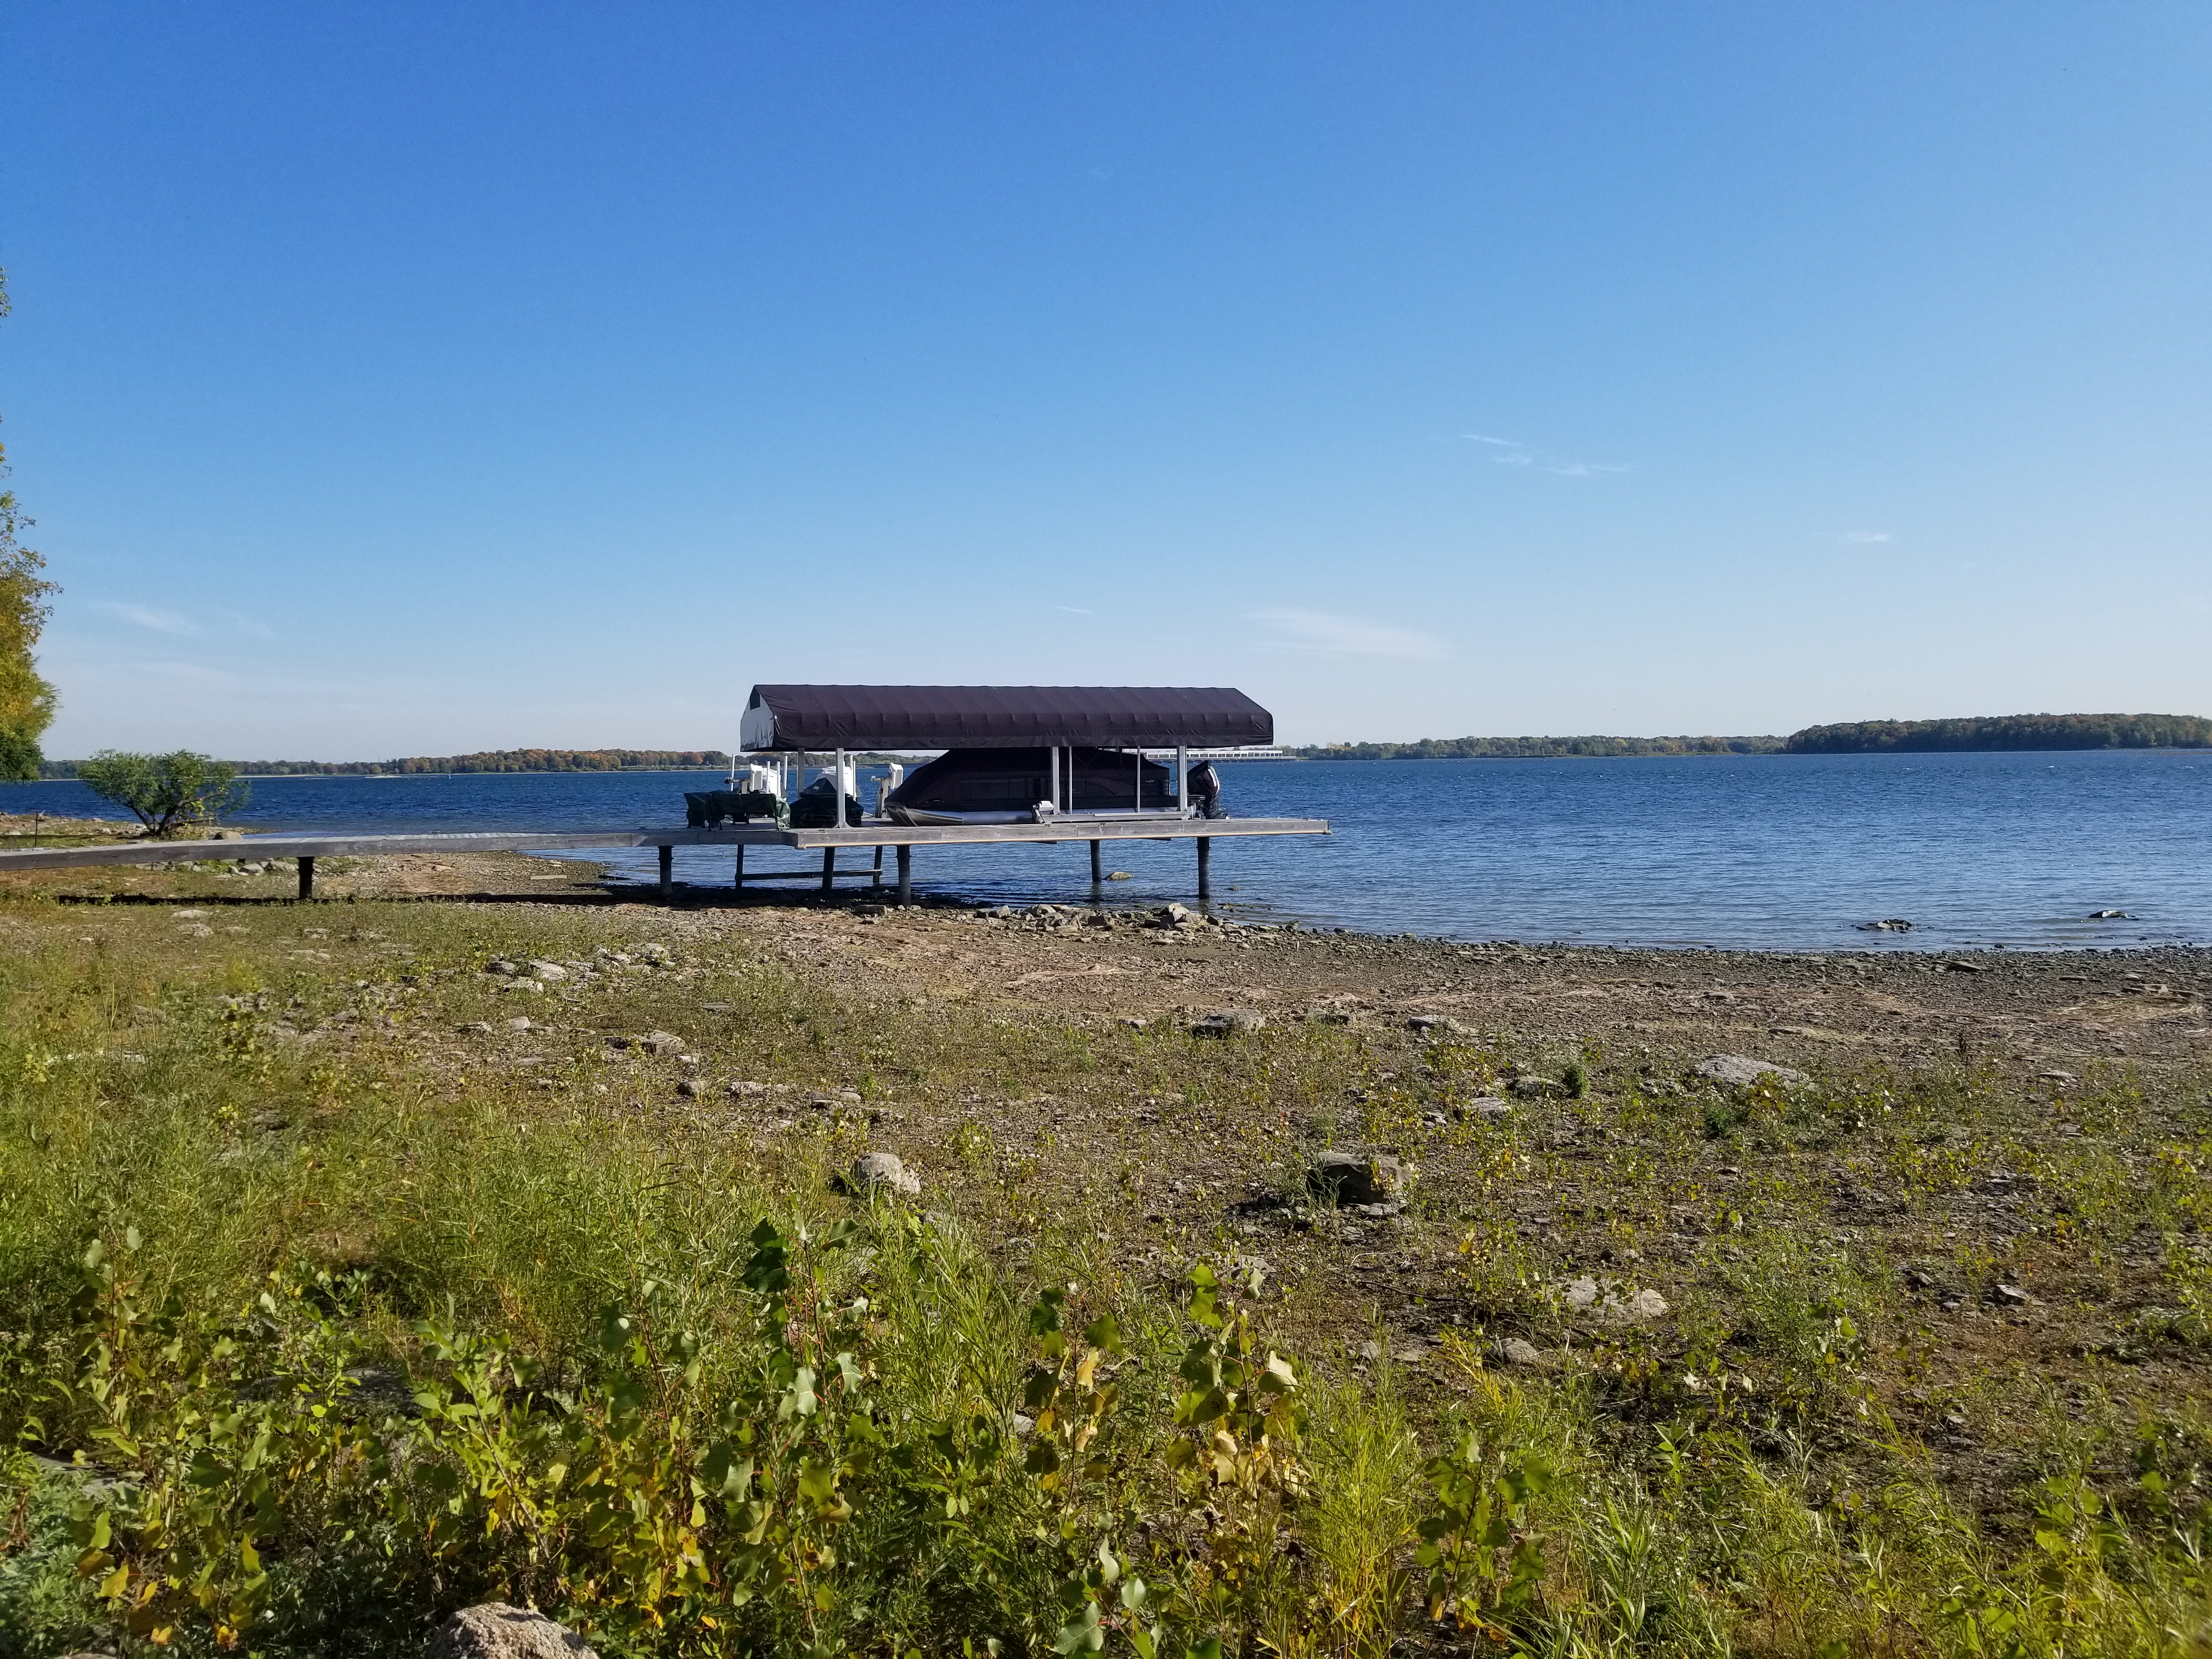 Lake St. Lawrence at Long Sault, Ontario, 10 October 2018 (source:  International Lake Ontario – St. Lawrence River Board)